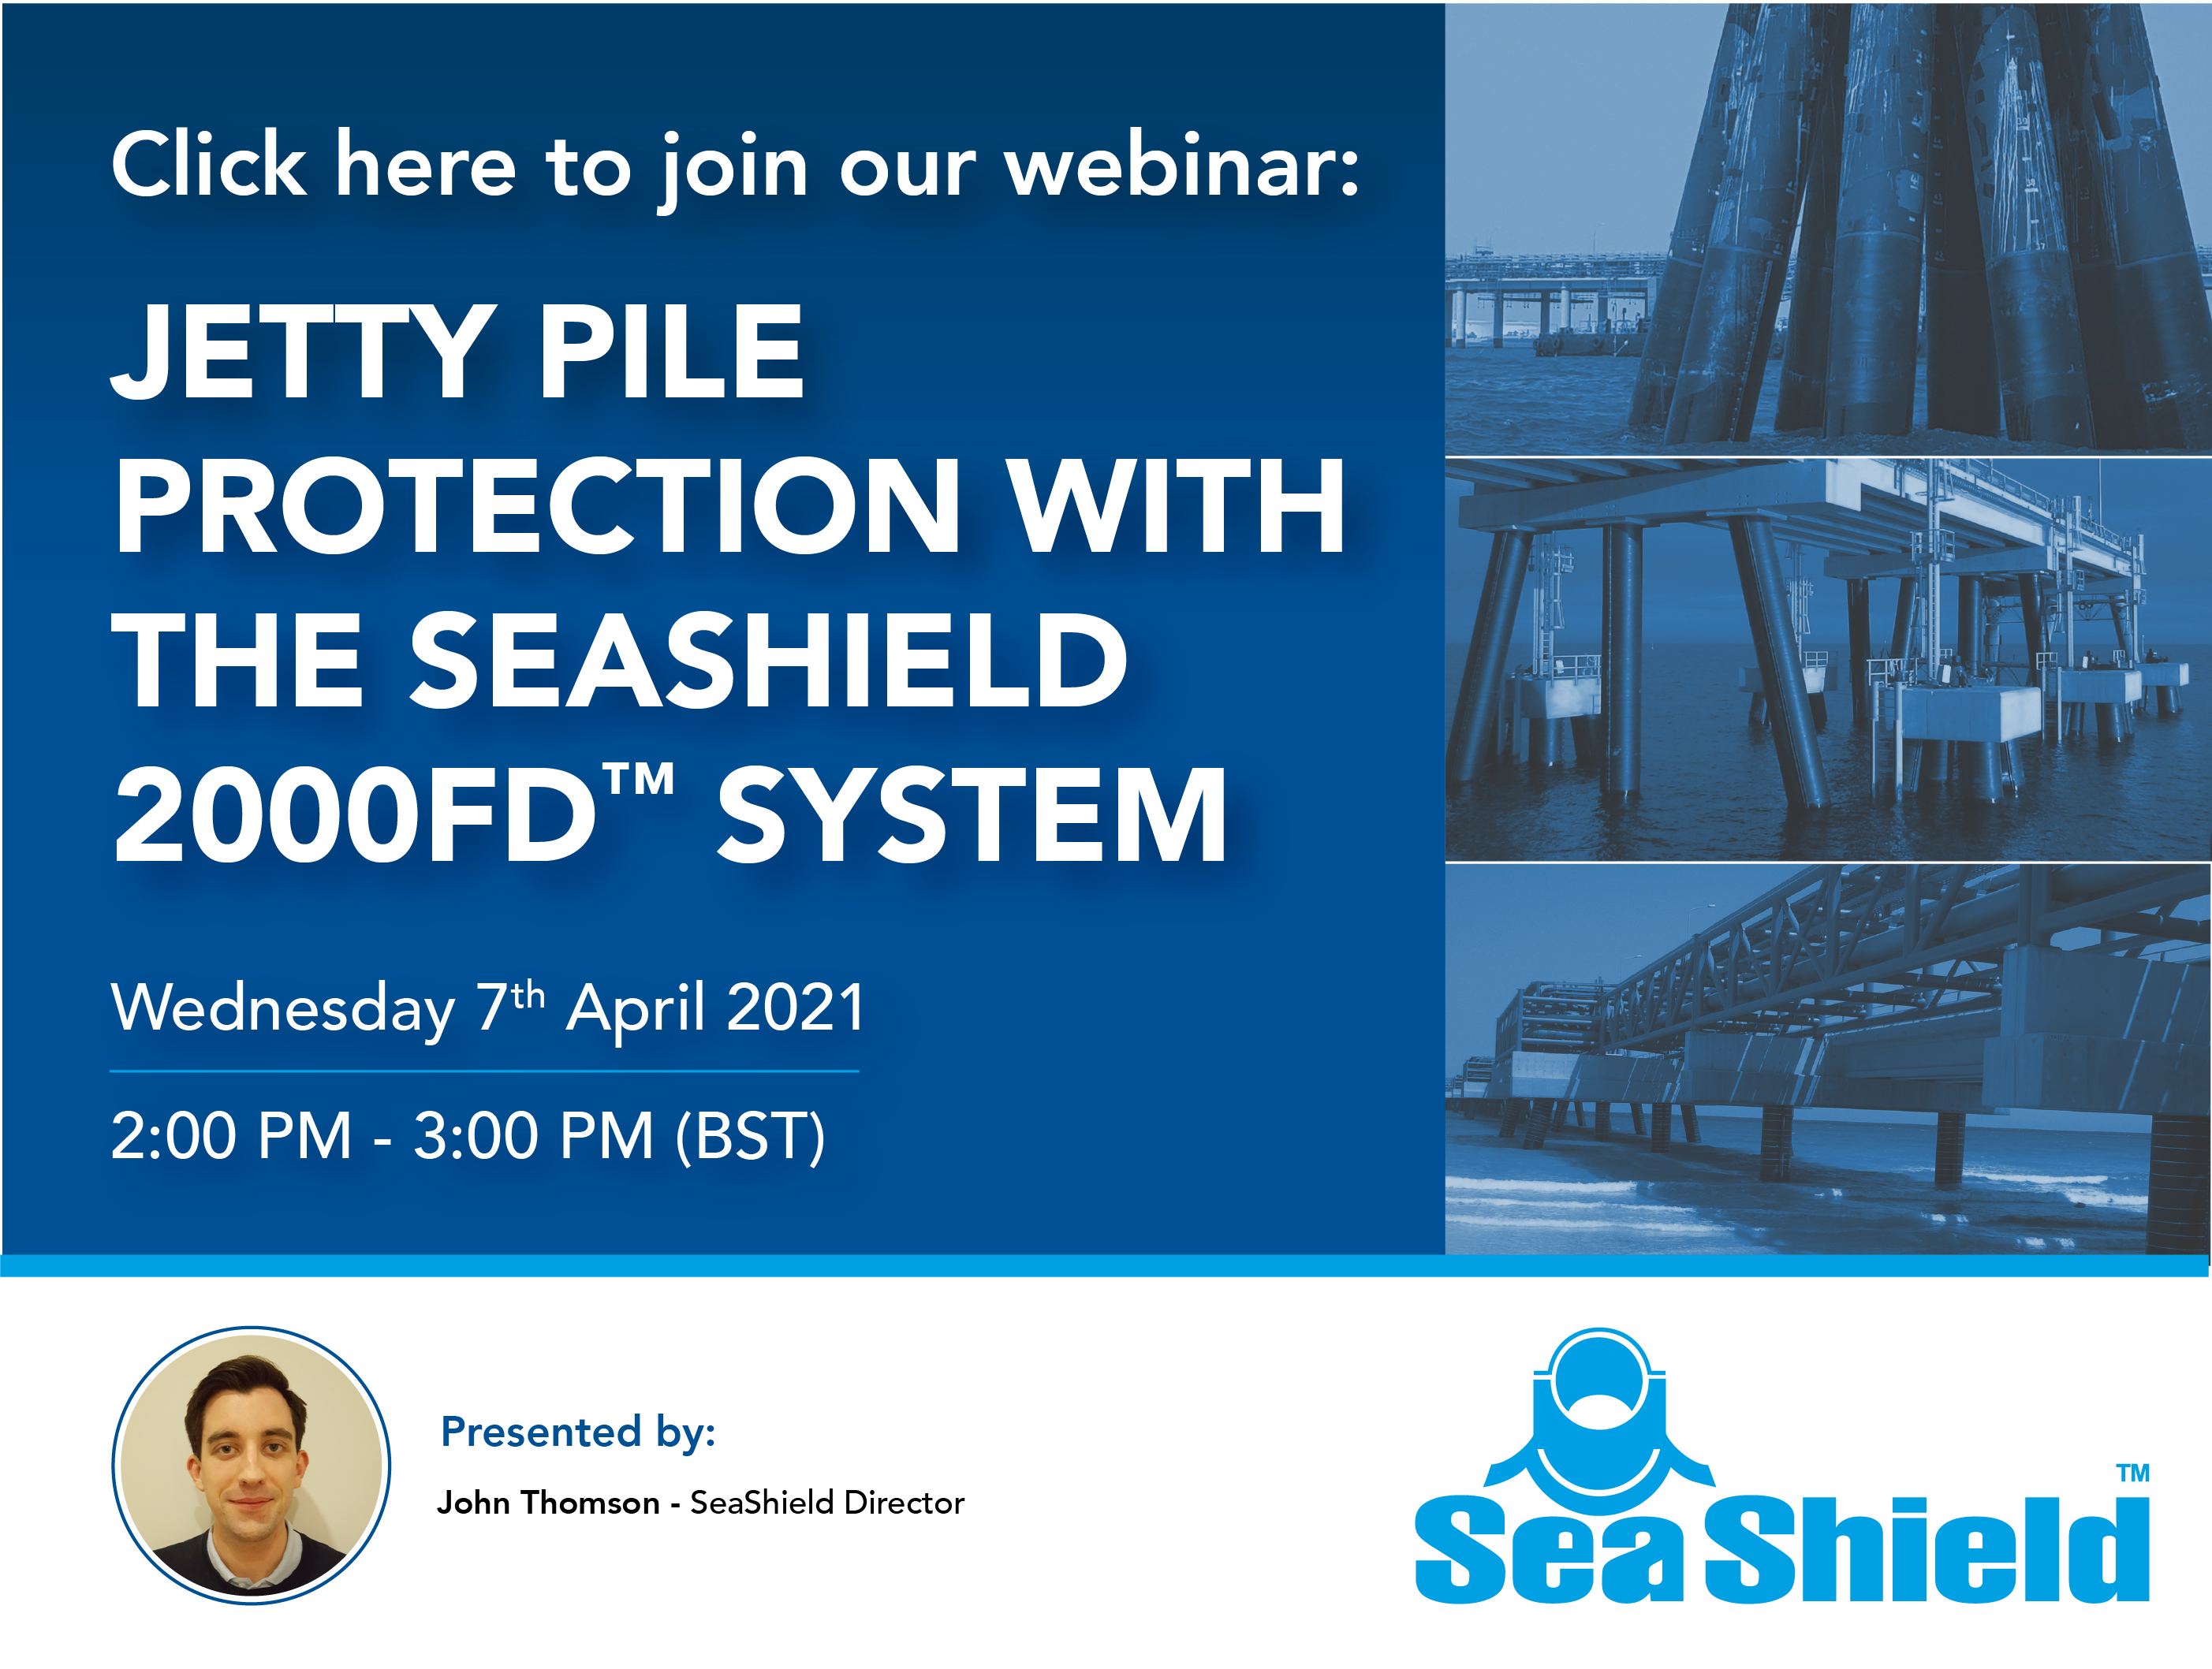 Join our SeaShield 2000FD System Webinar on Wednesday 7th April 2021